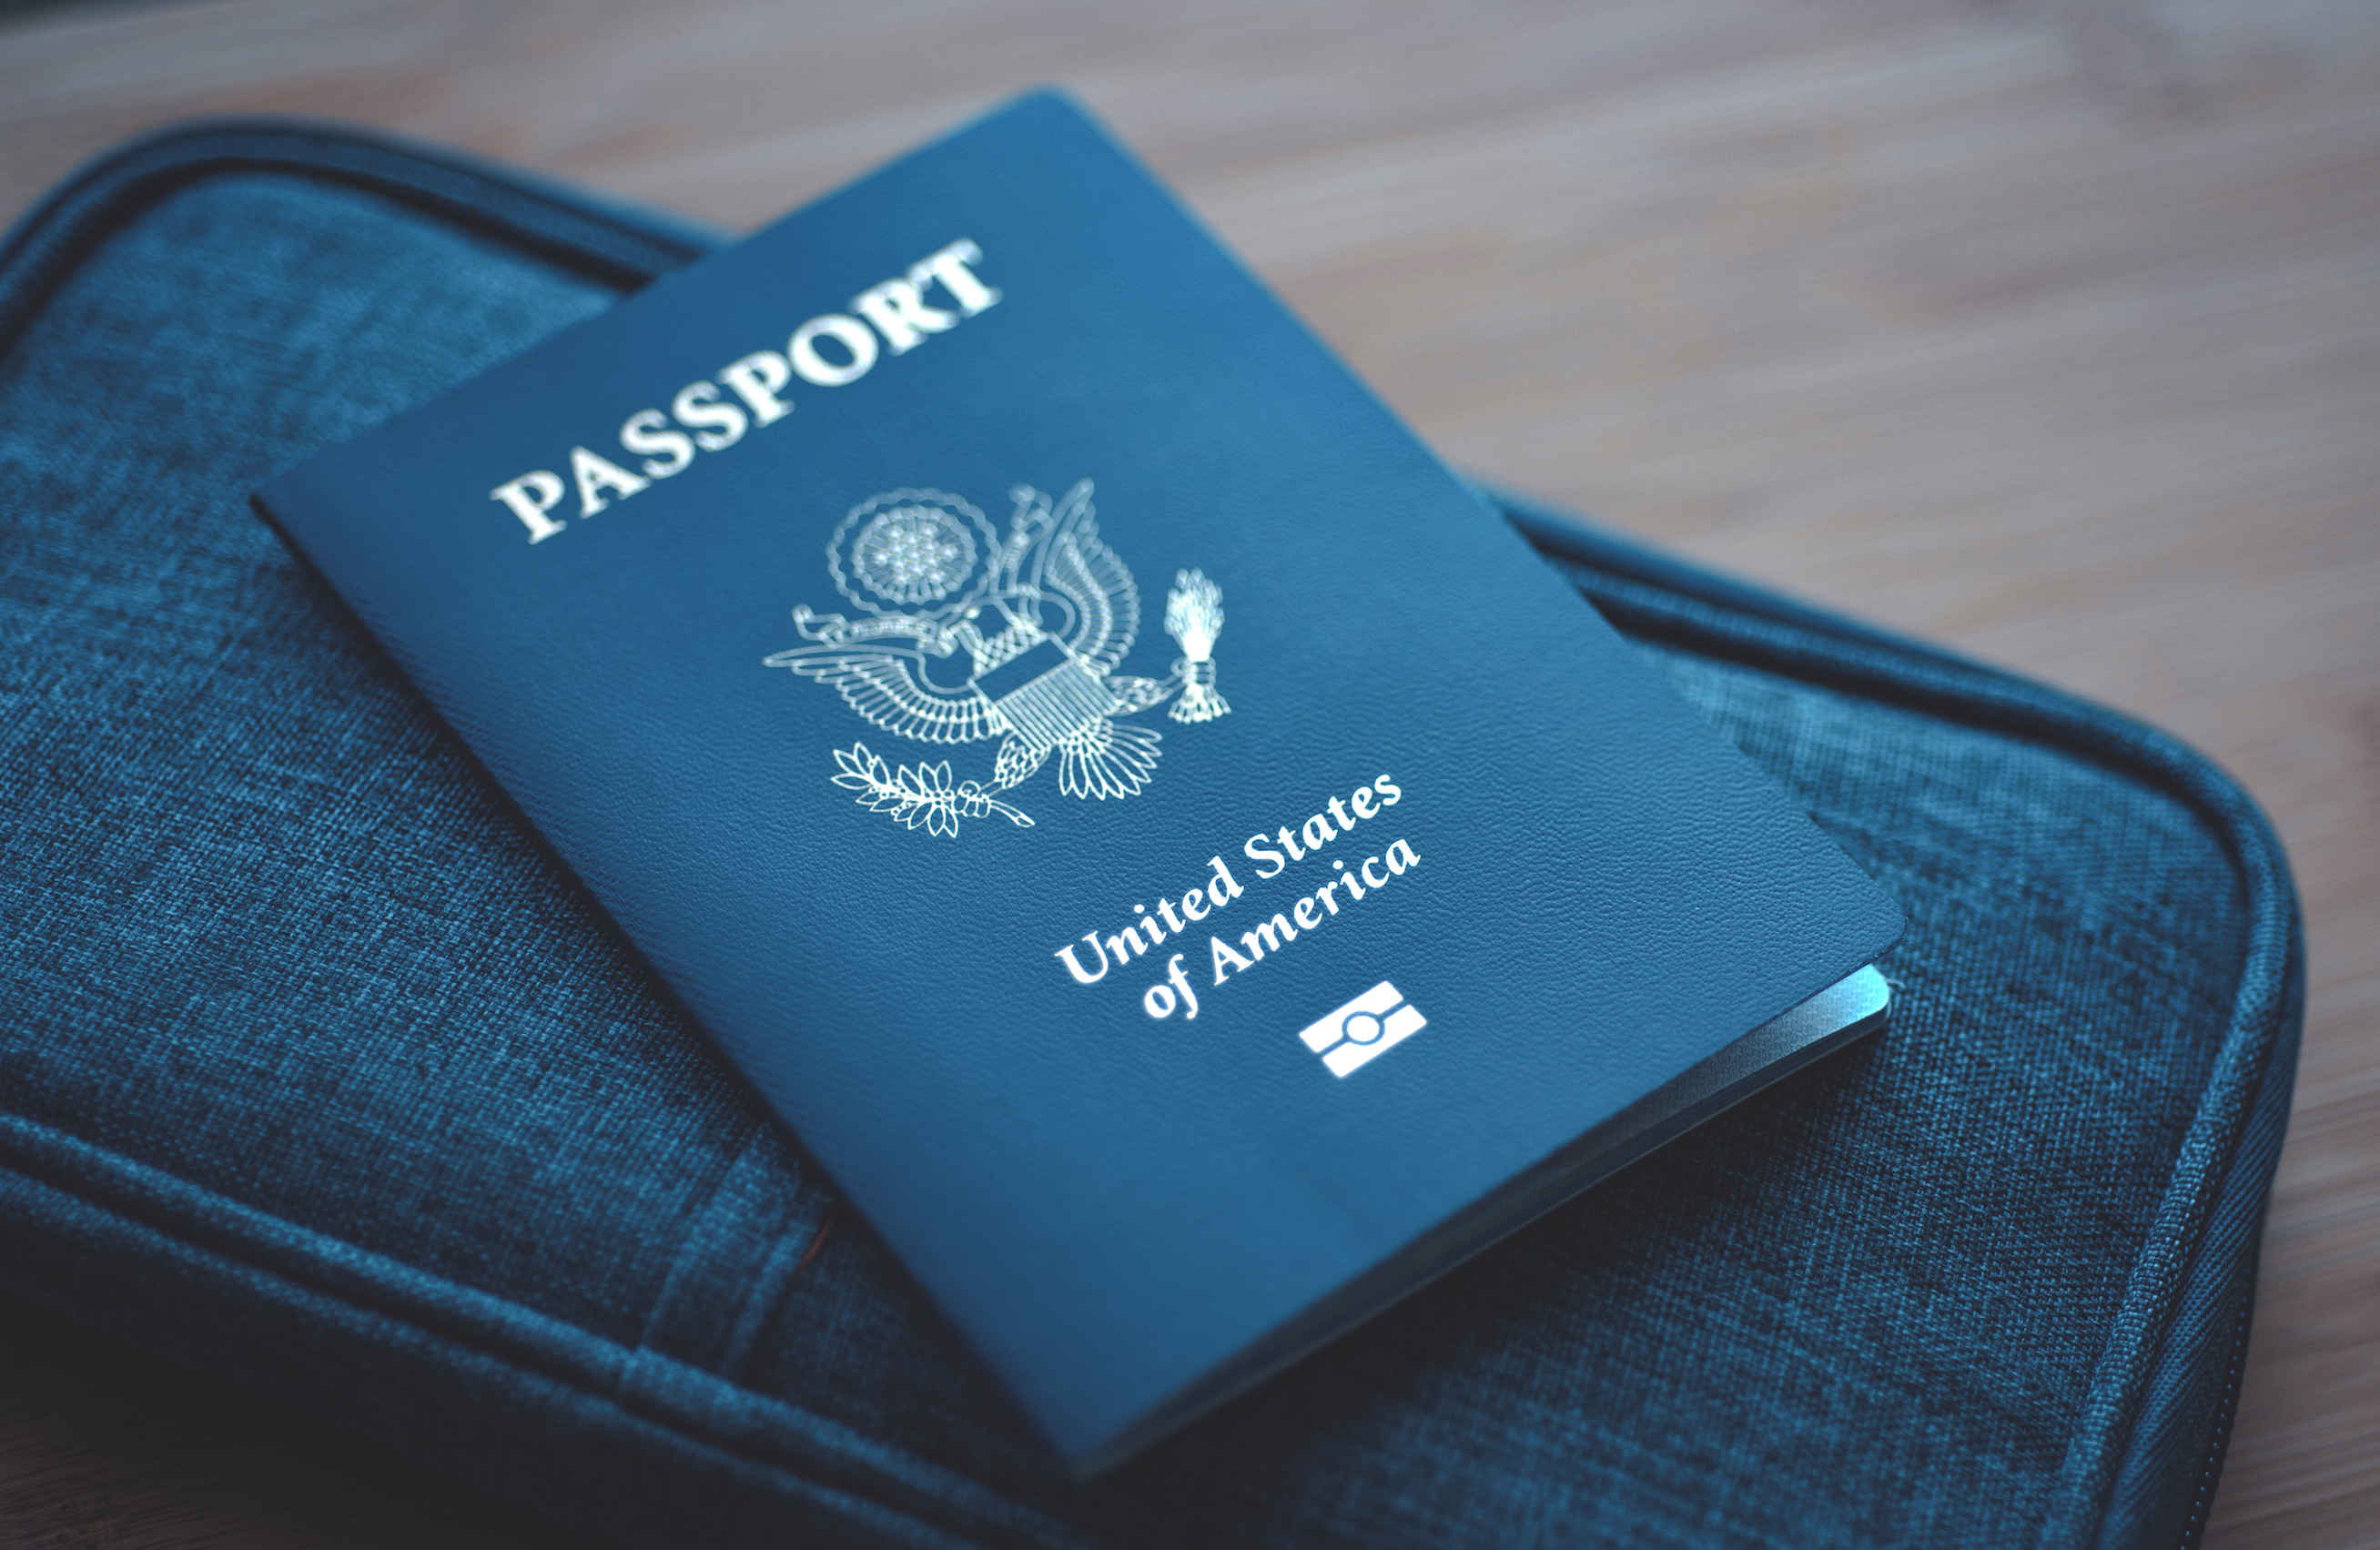 302c62817 7 Countries U.S. Citizens Need Visas in Advance